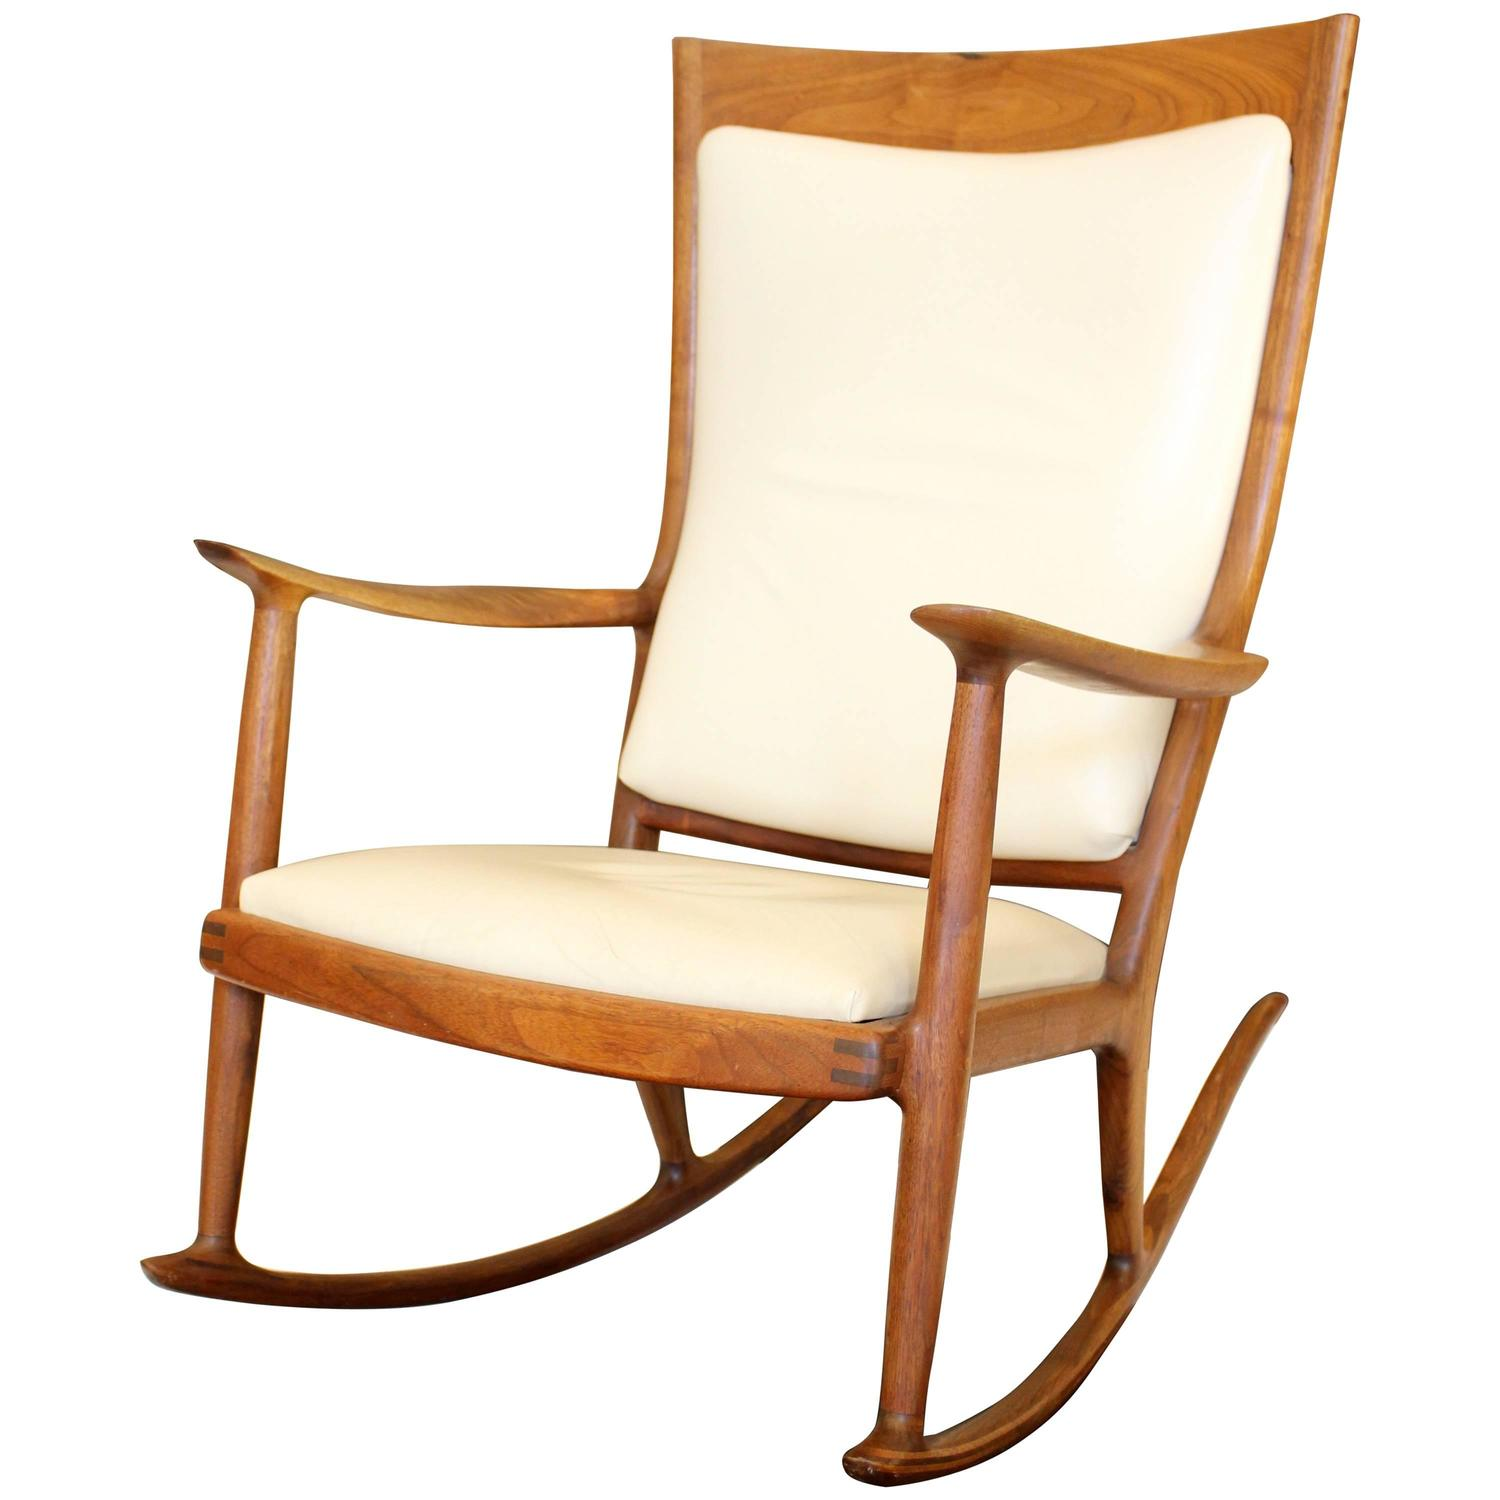 a beautiful sam maloof rocking chair for sale at 1stdibs. Black Bedroom Furniture Sets. Home Design Ideas